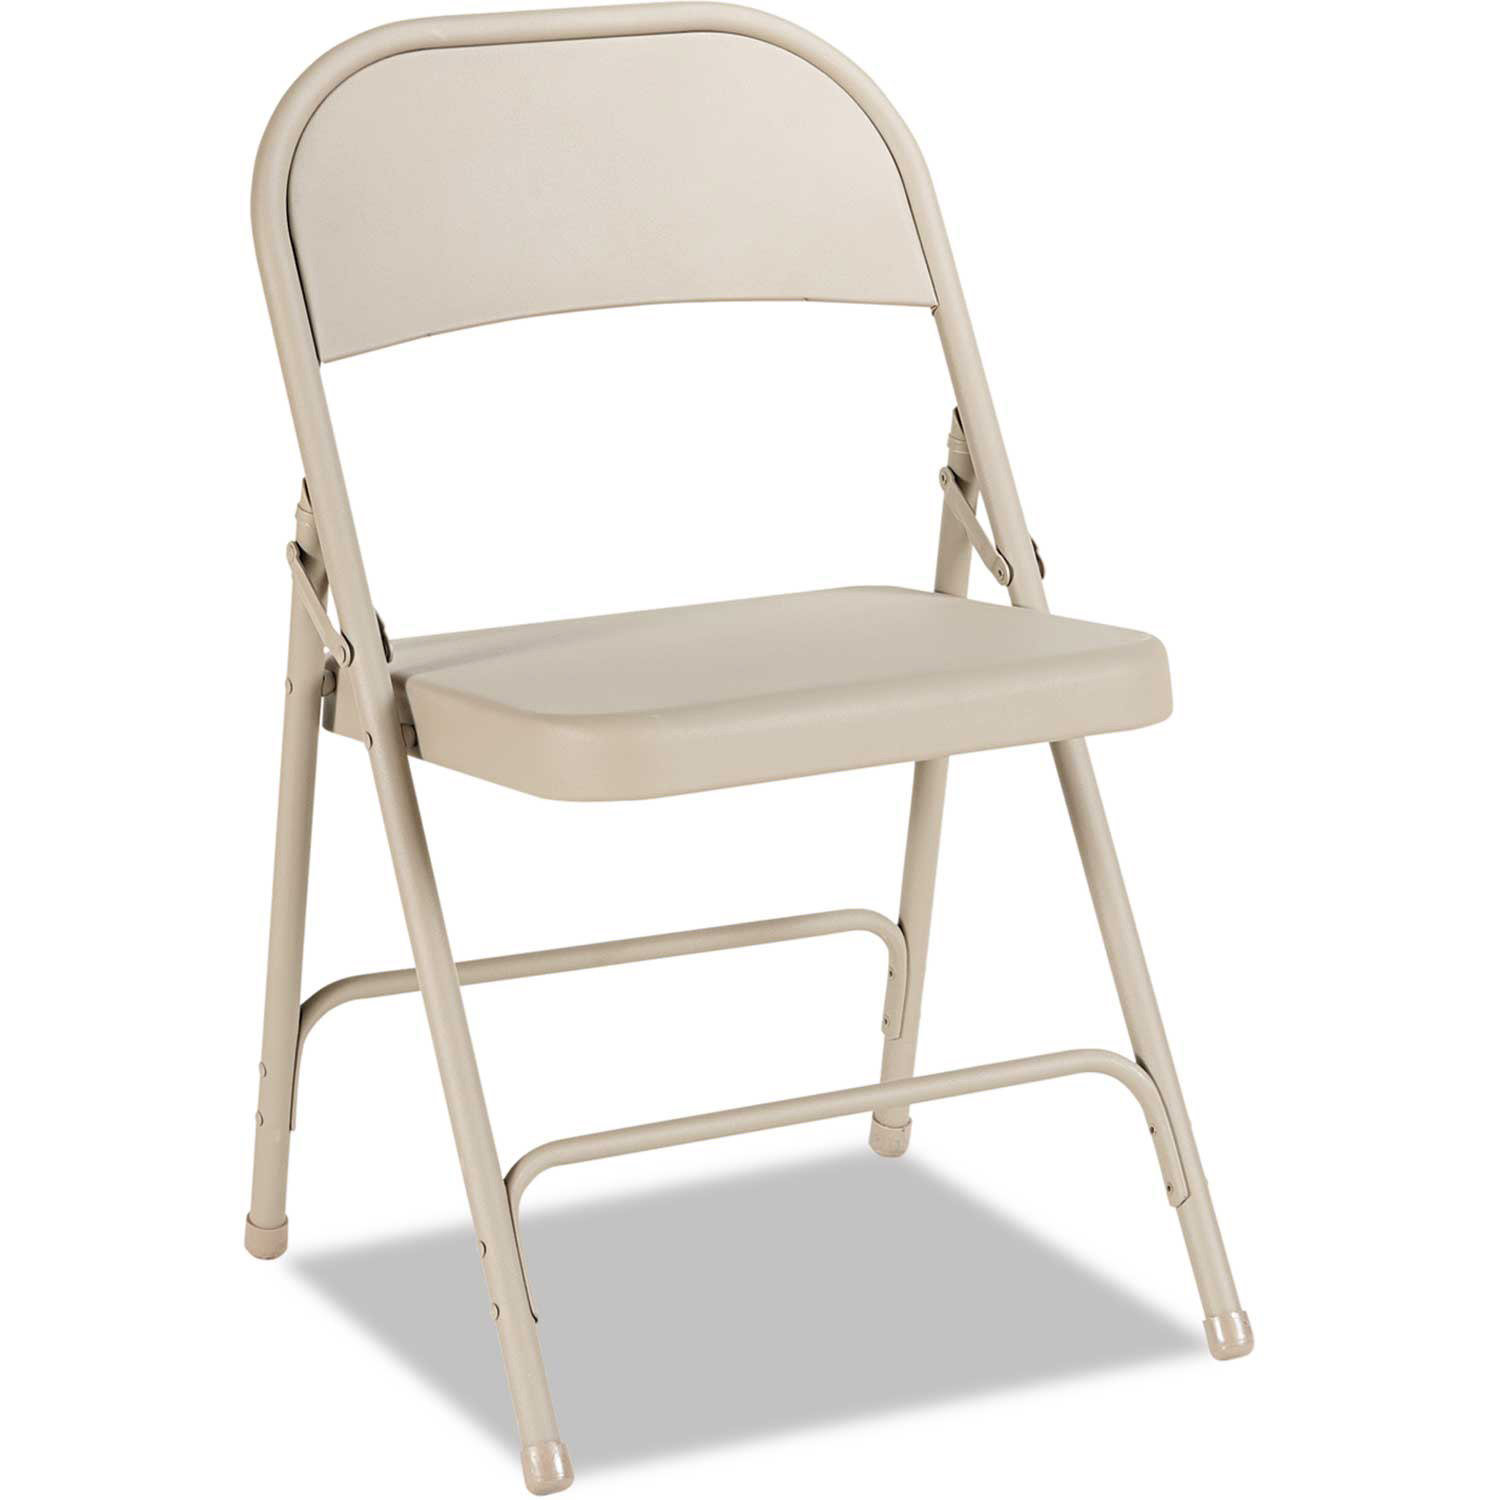 Alera Steel Folding Chair Tan 4/Carton by